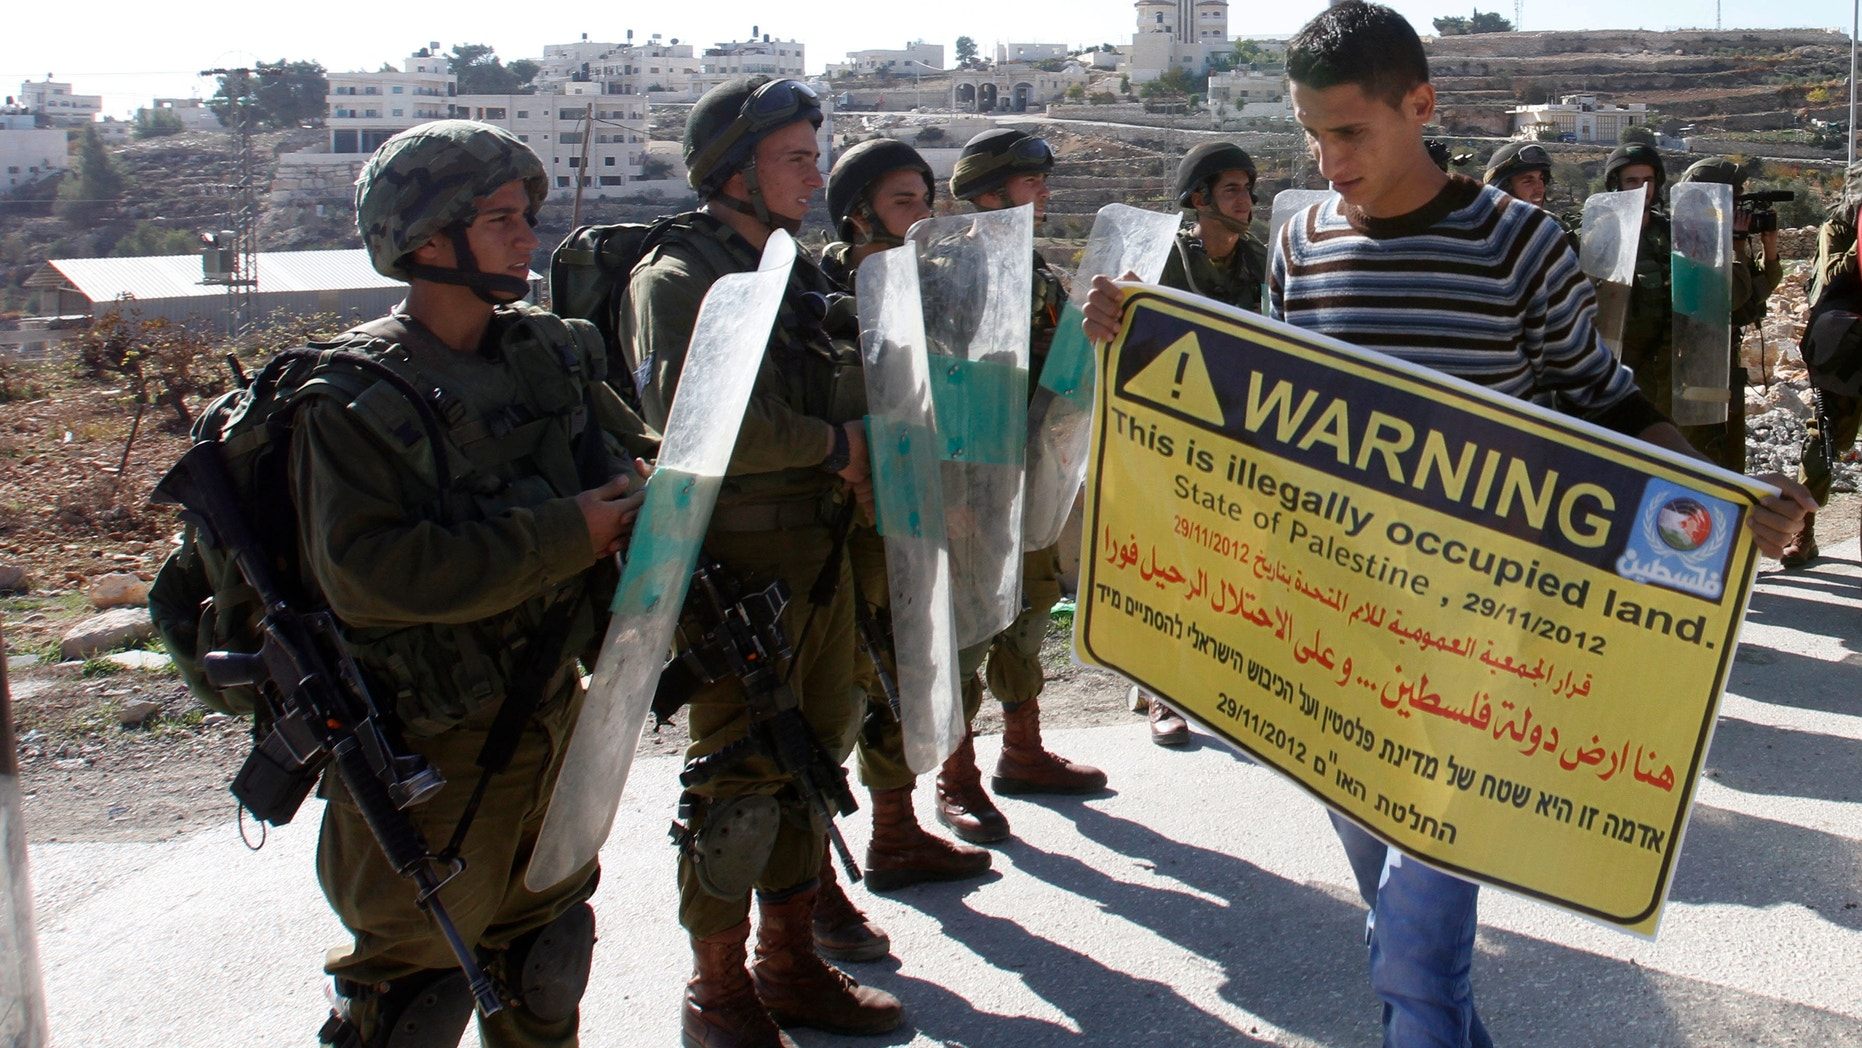 Nov. 30, 2012 -Palestinian protester holds placard in front of Israeli soldiers during a demonstration in the West Bank village of al-Masara near Bethlehem.